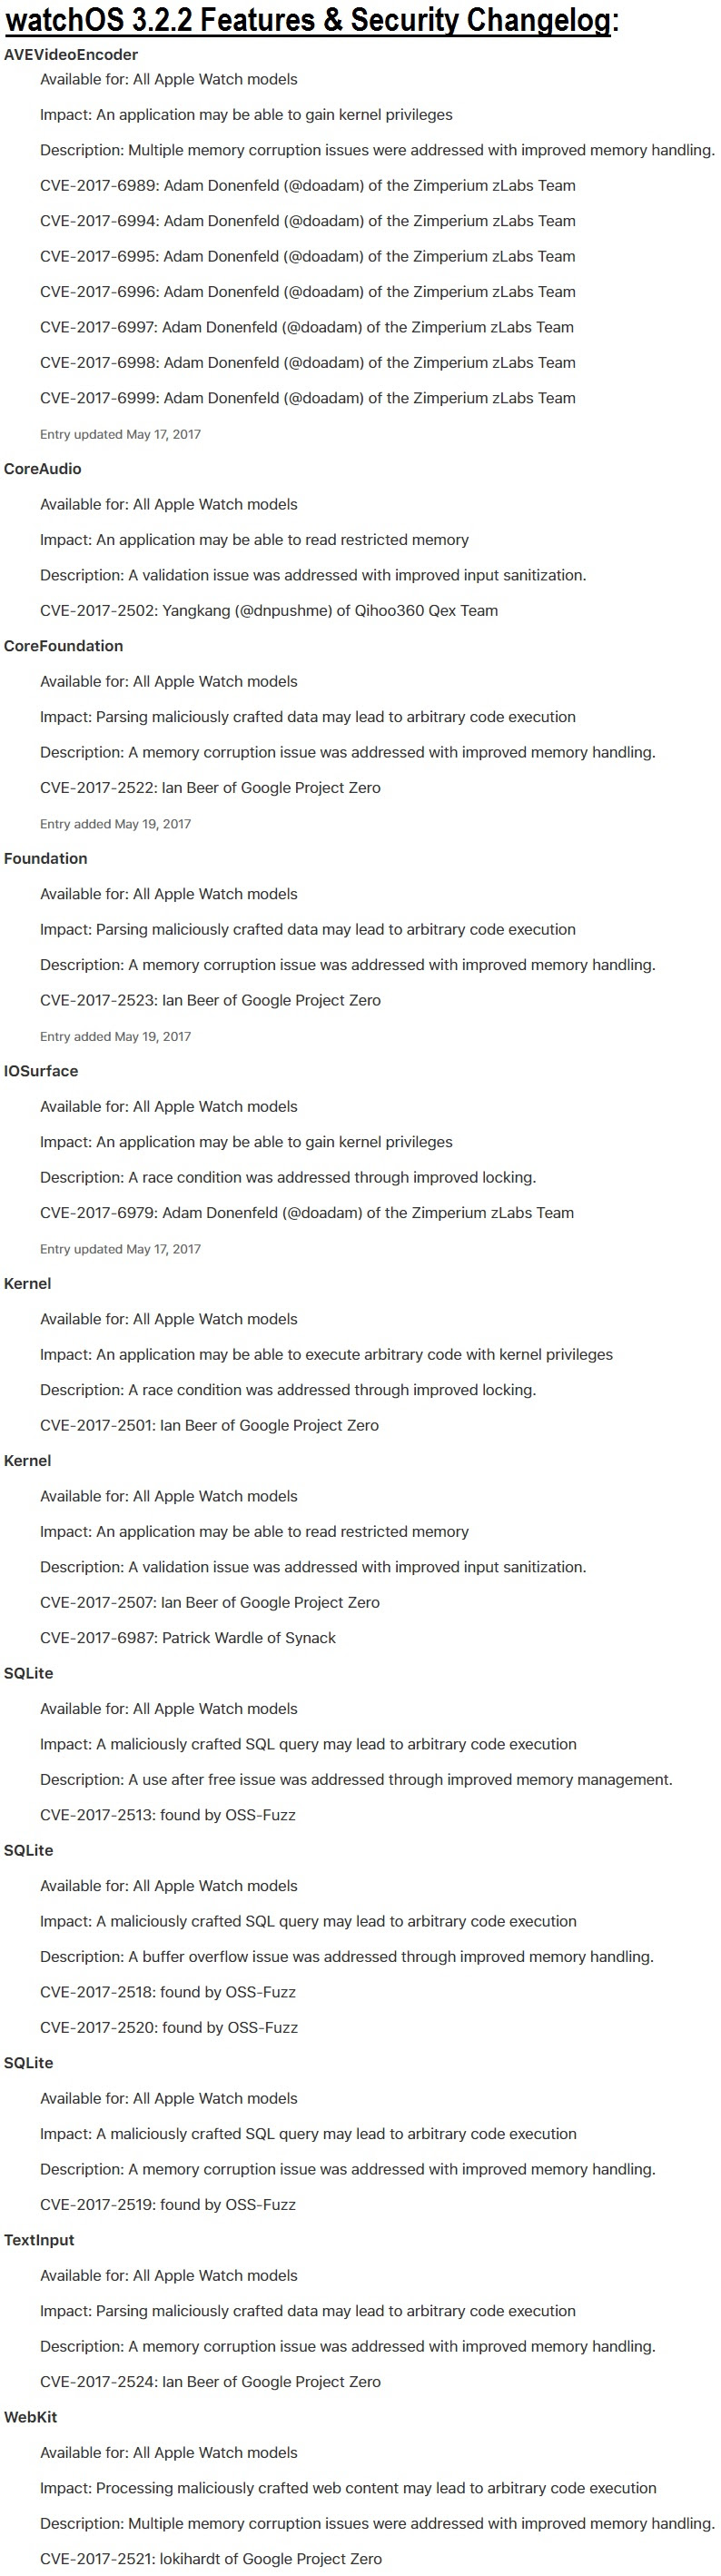 watchOS 3.2.2 Features Release Notes and Security Changelog